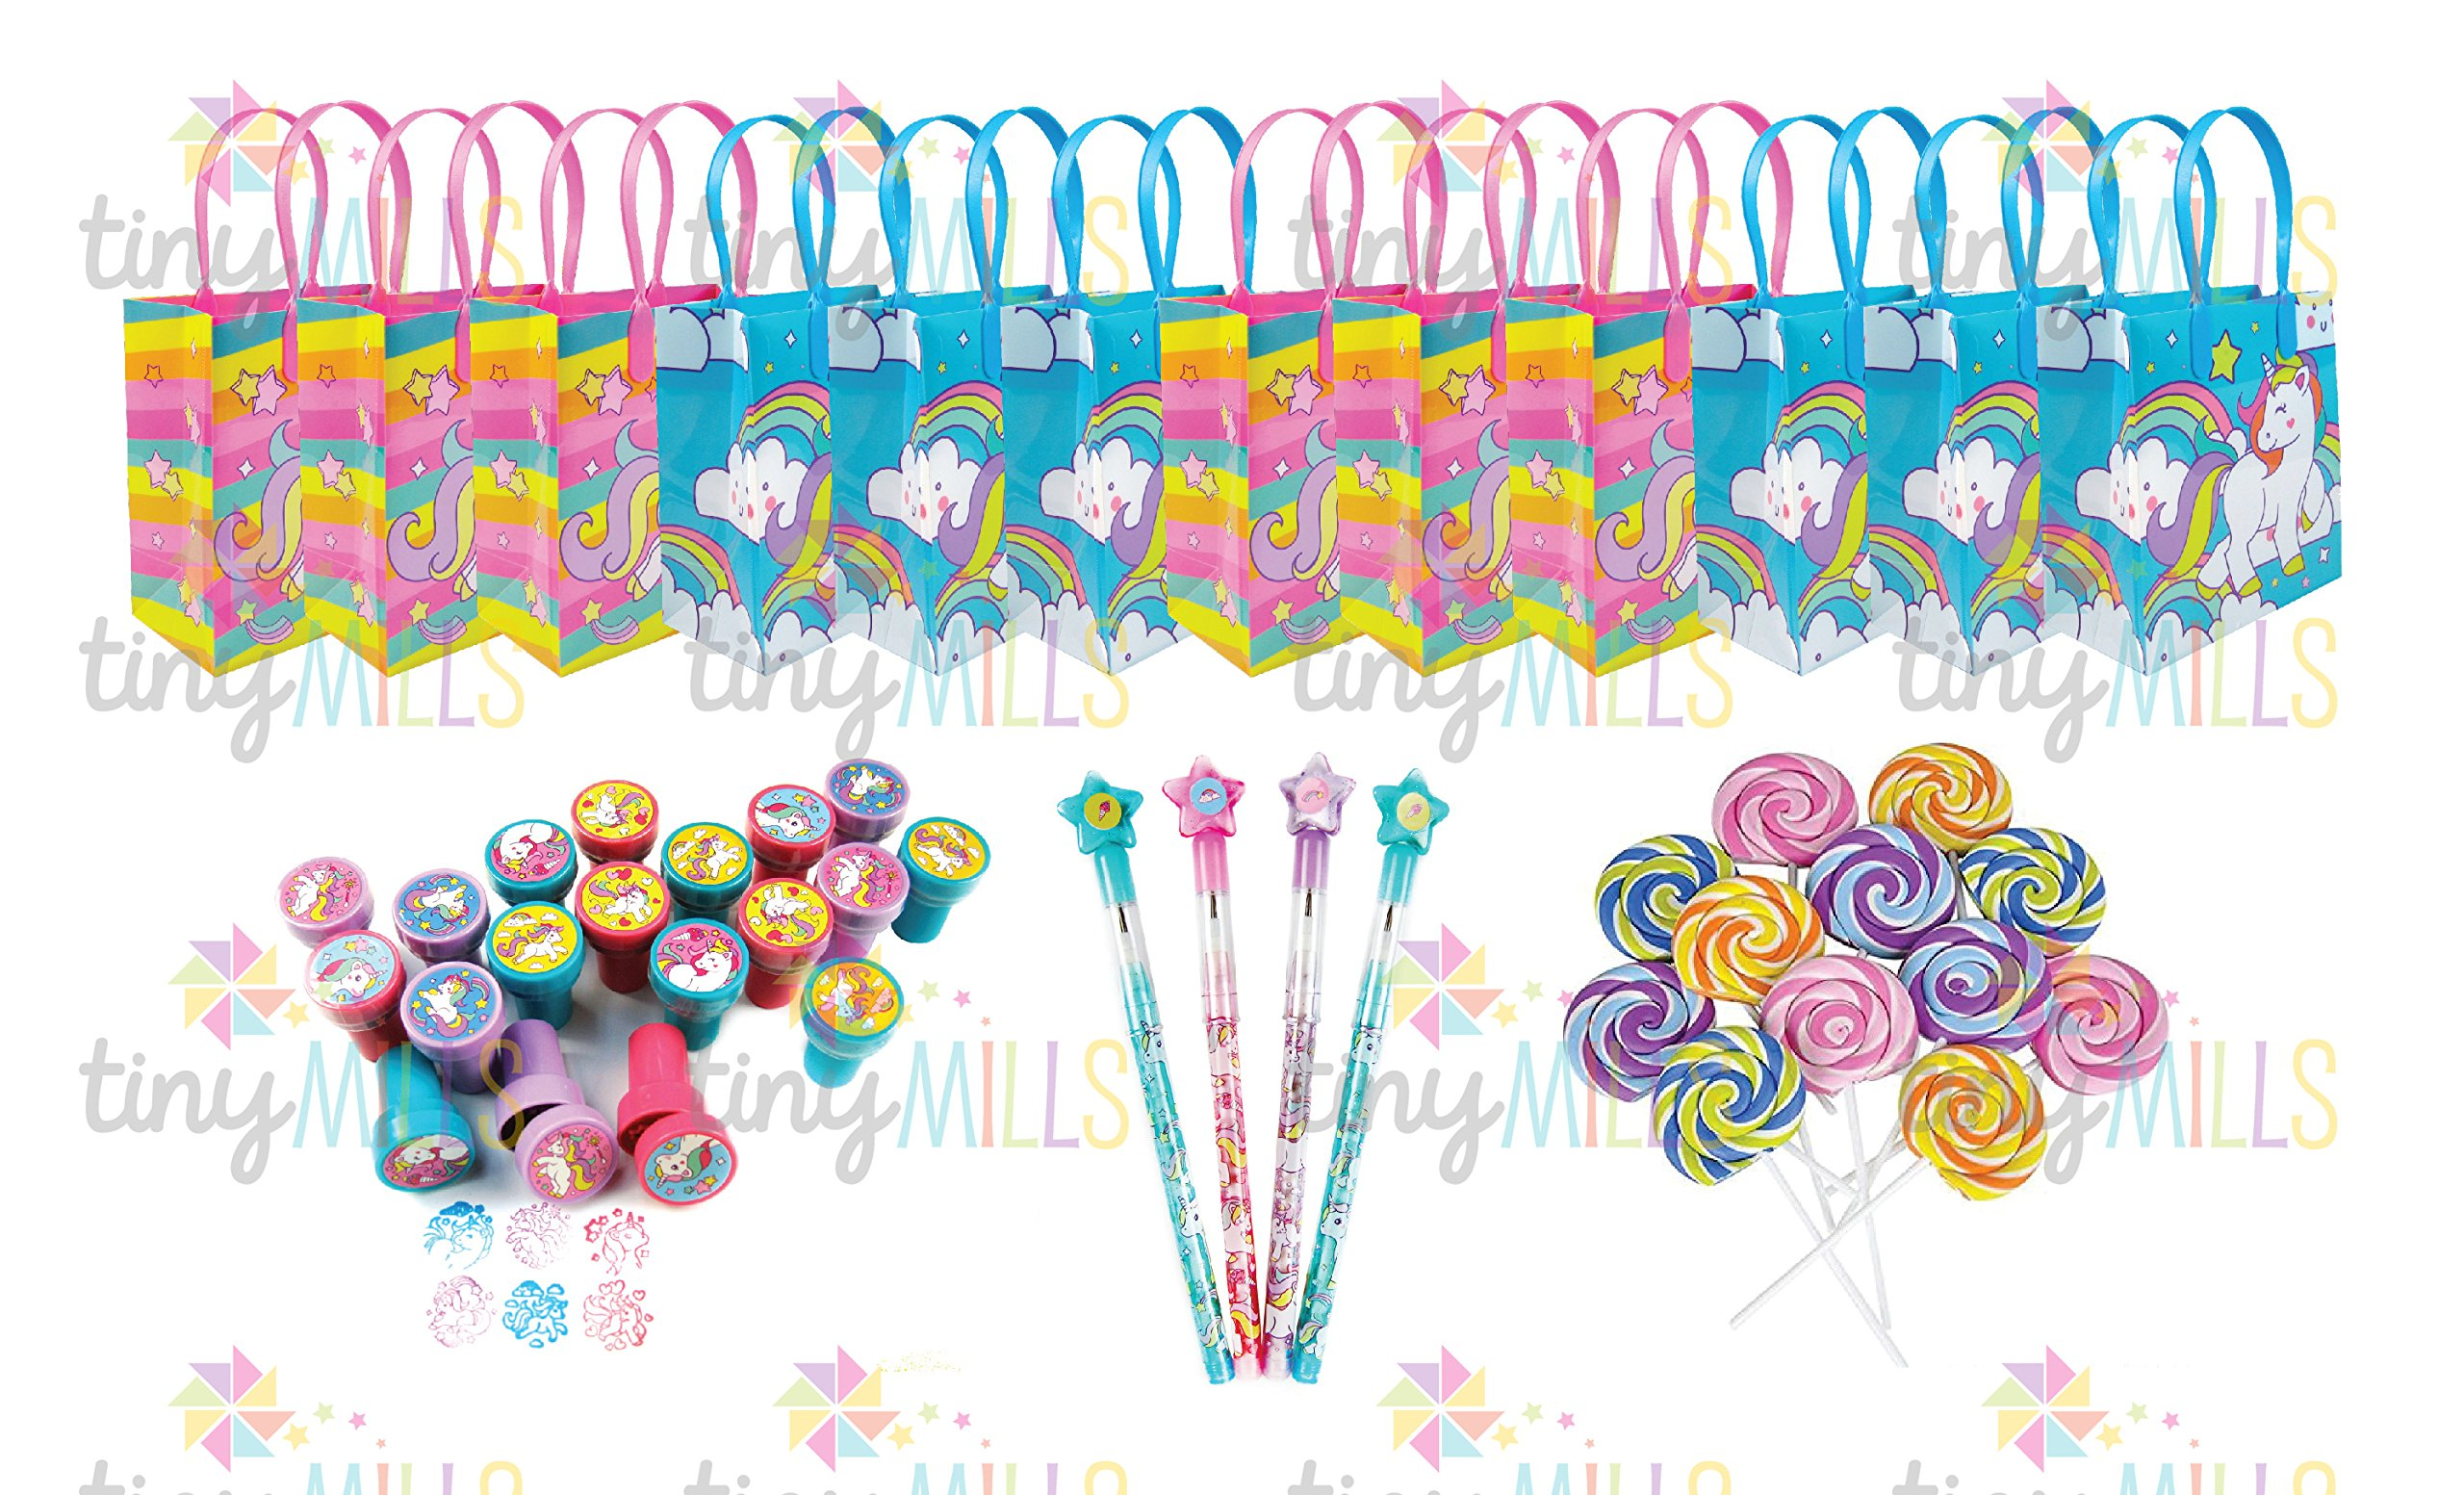 TINYMILLS Unicorn Birthday Party Favor Set of 60 pcs (12 treat bags, 24 stampers, 12 multi-point pencils, 12 lollipop erasers)